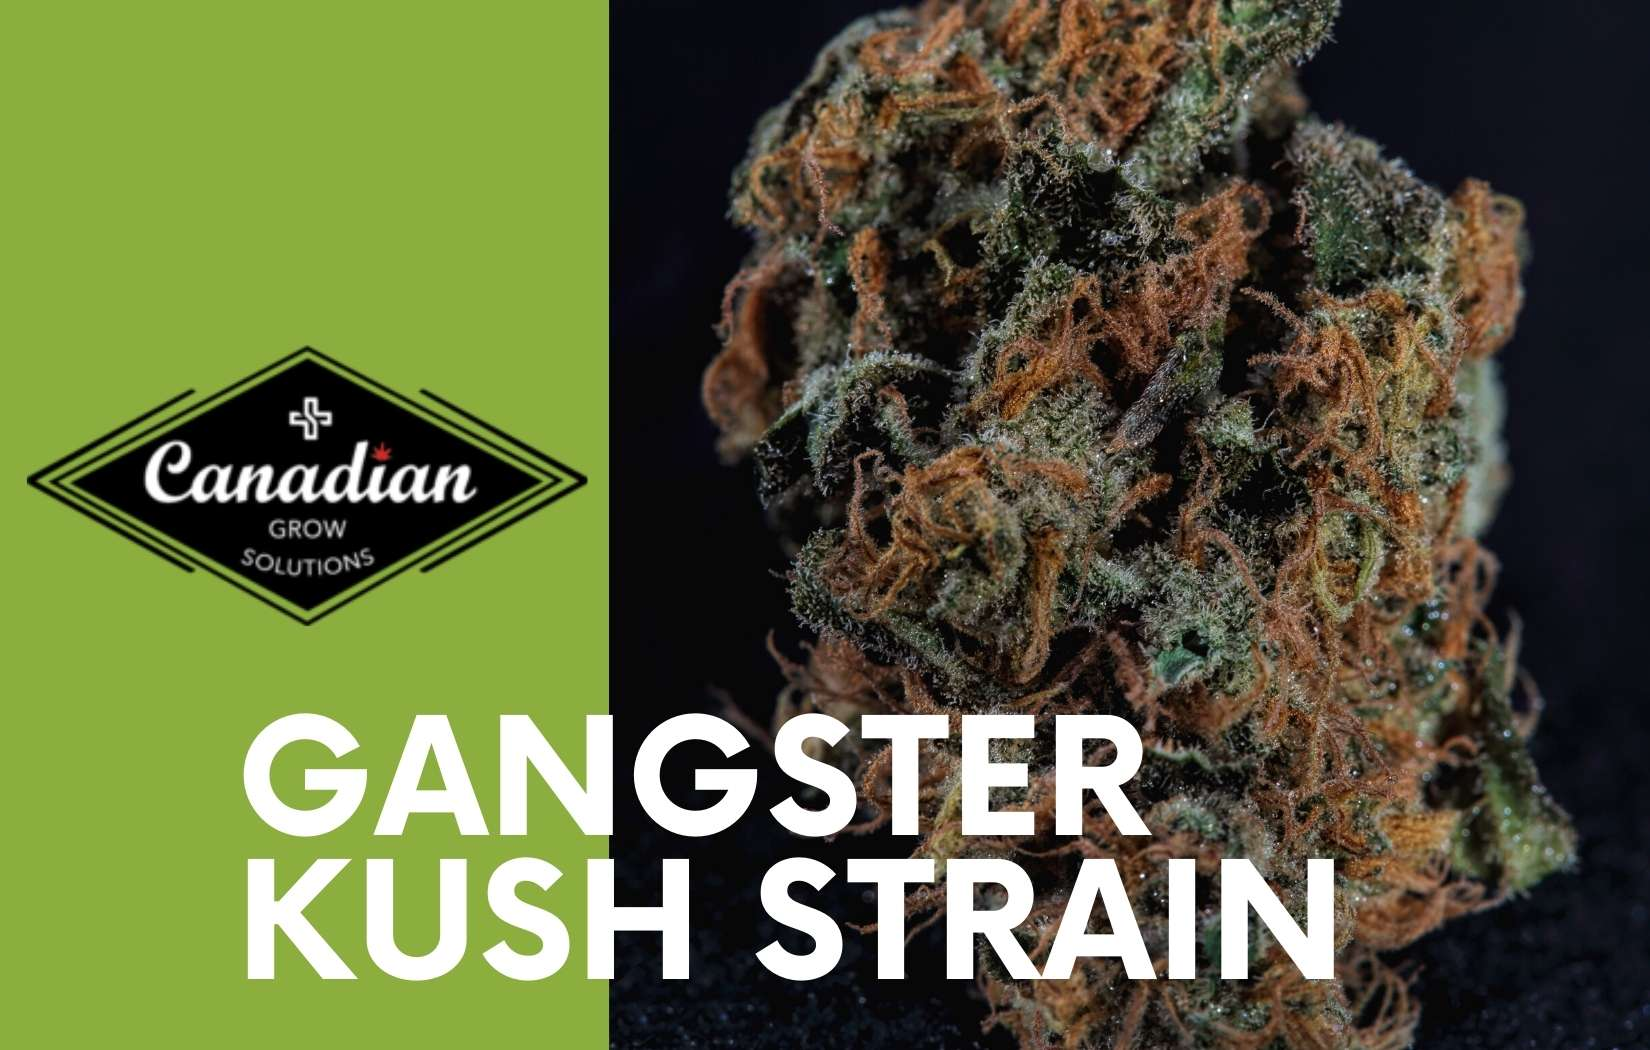 Experience quick and exhilarating high with Gangster OG Kush Strain